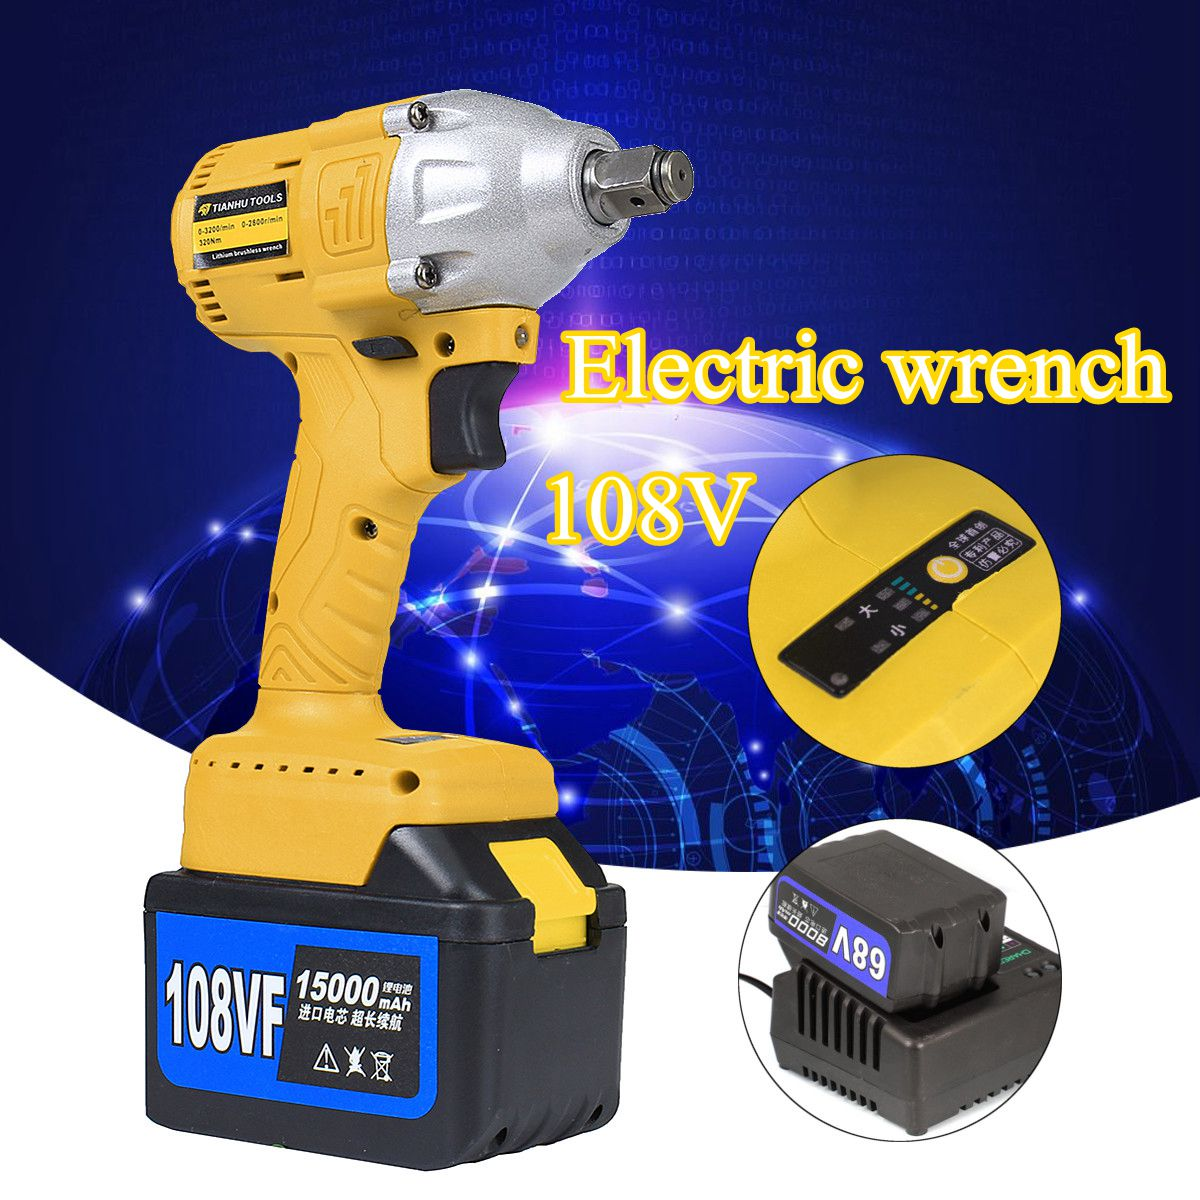 15000mAh 108V Akku elektrisch Bohrschrauber Wrench Lithium-Ionen Koffer Lithium brushless electric wrench sony cp s15 s 15000 mah